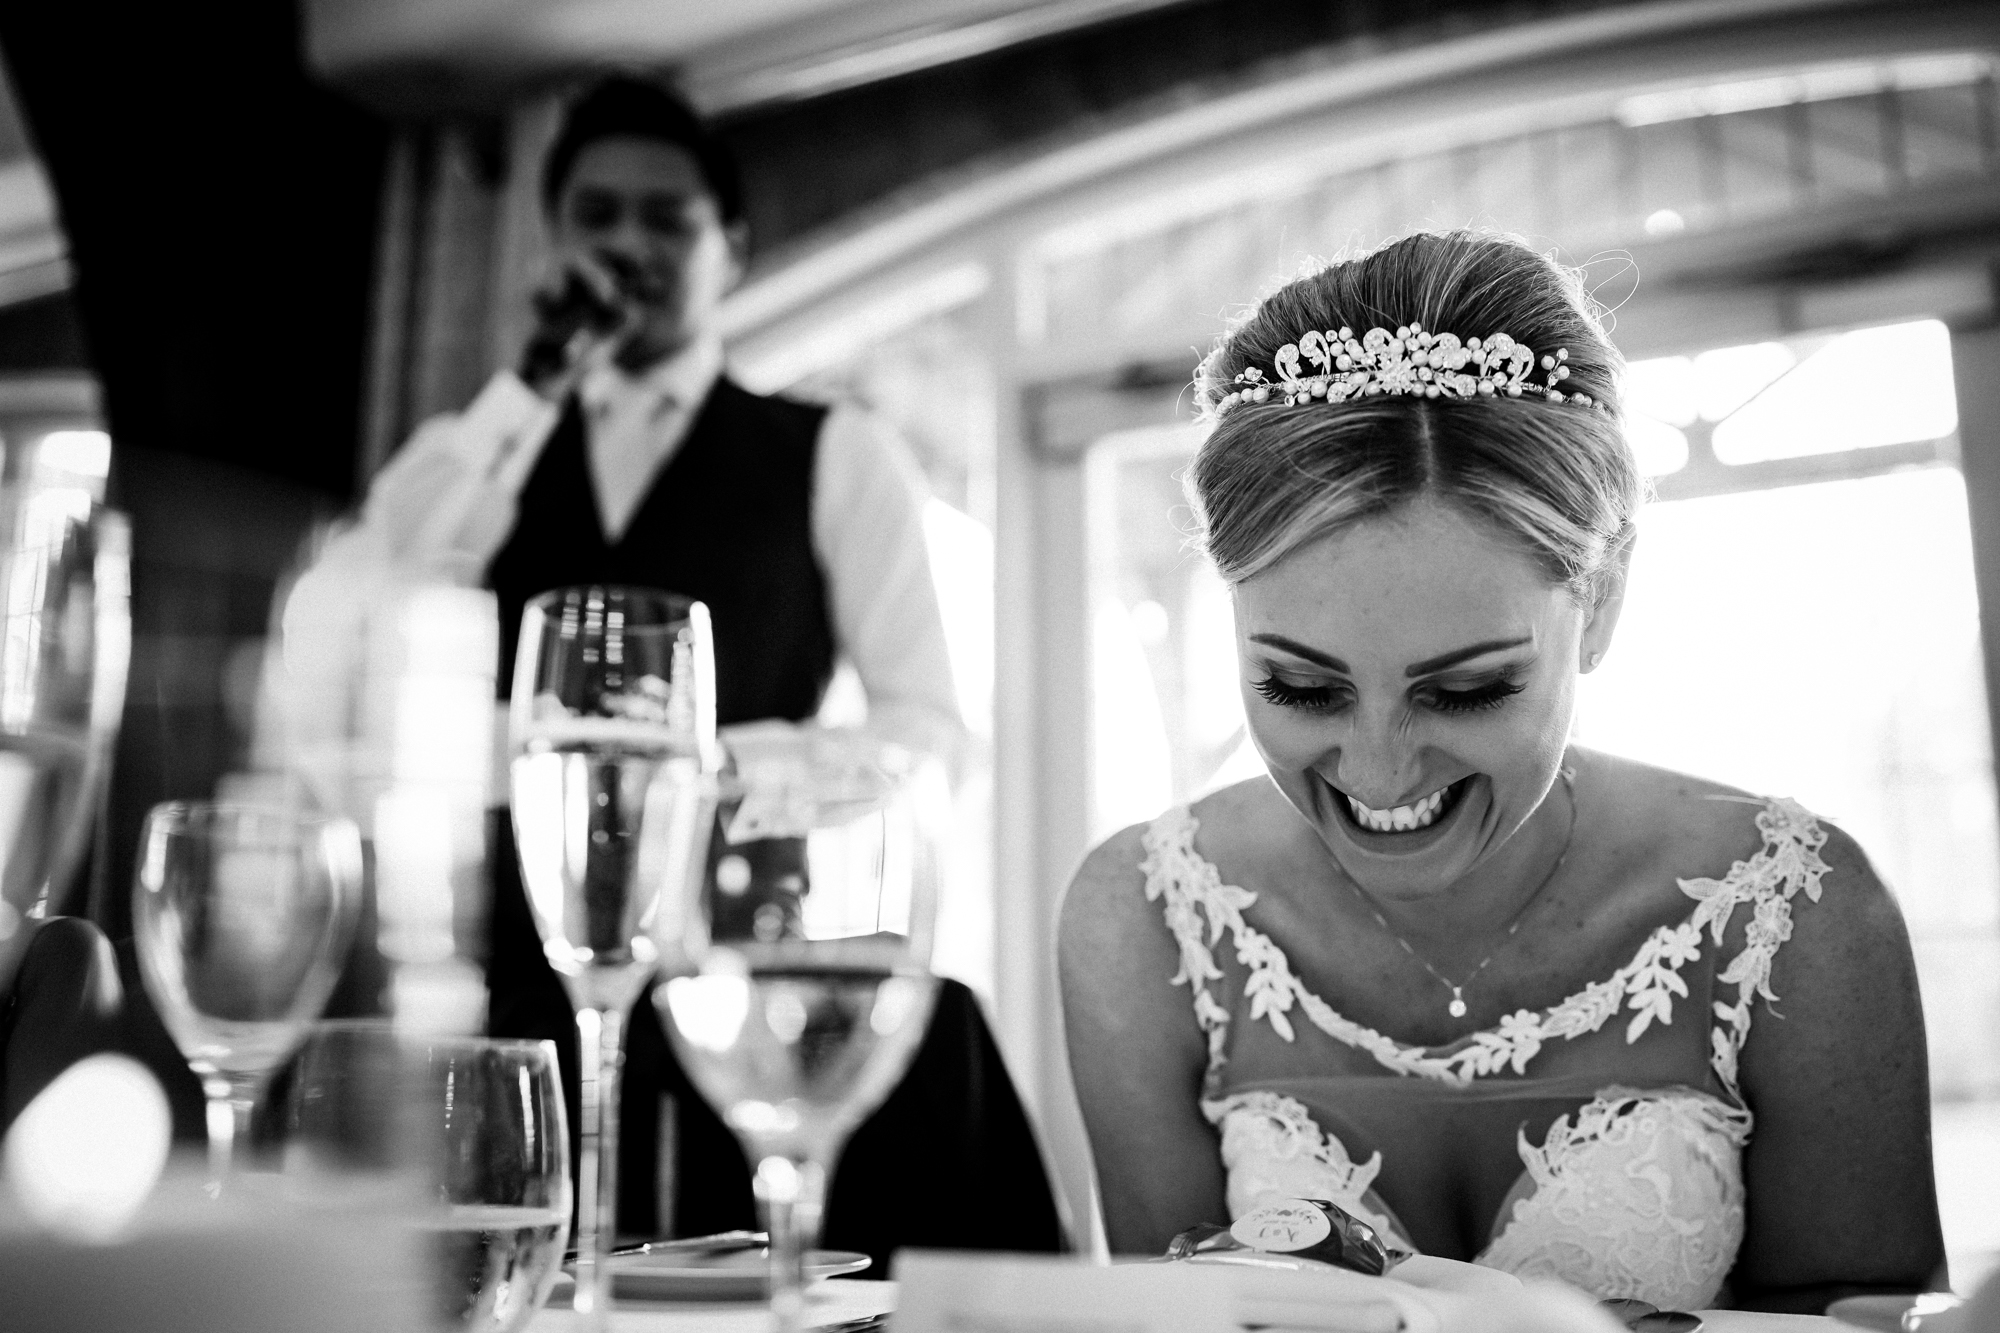 Colshaw Hall Chinese Wedding Photography lancashire wedding photographer (39 of 46).jpg